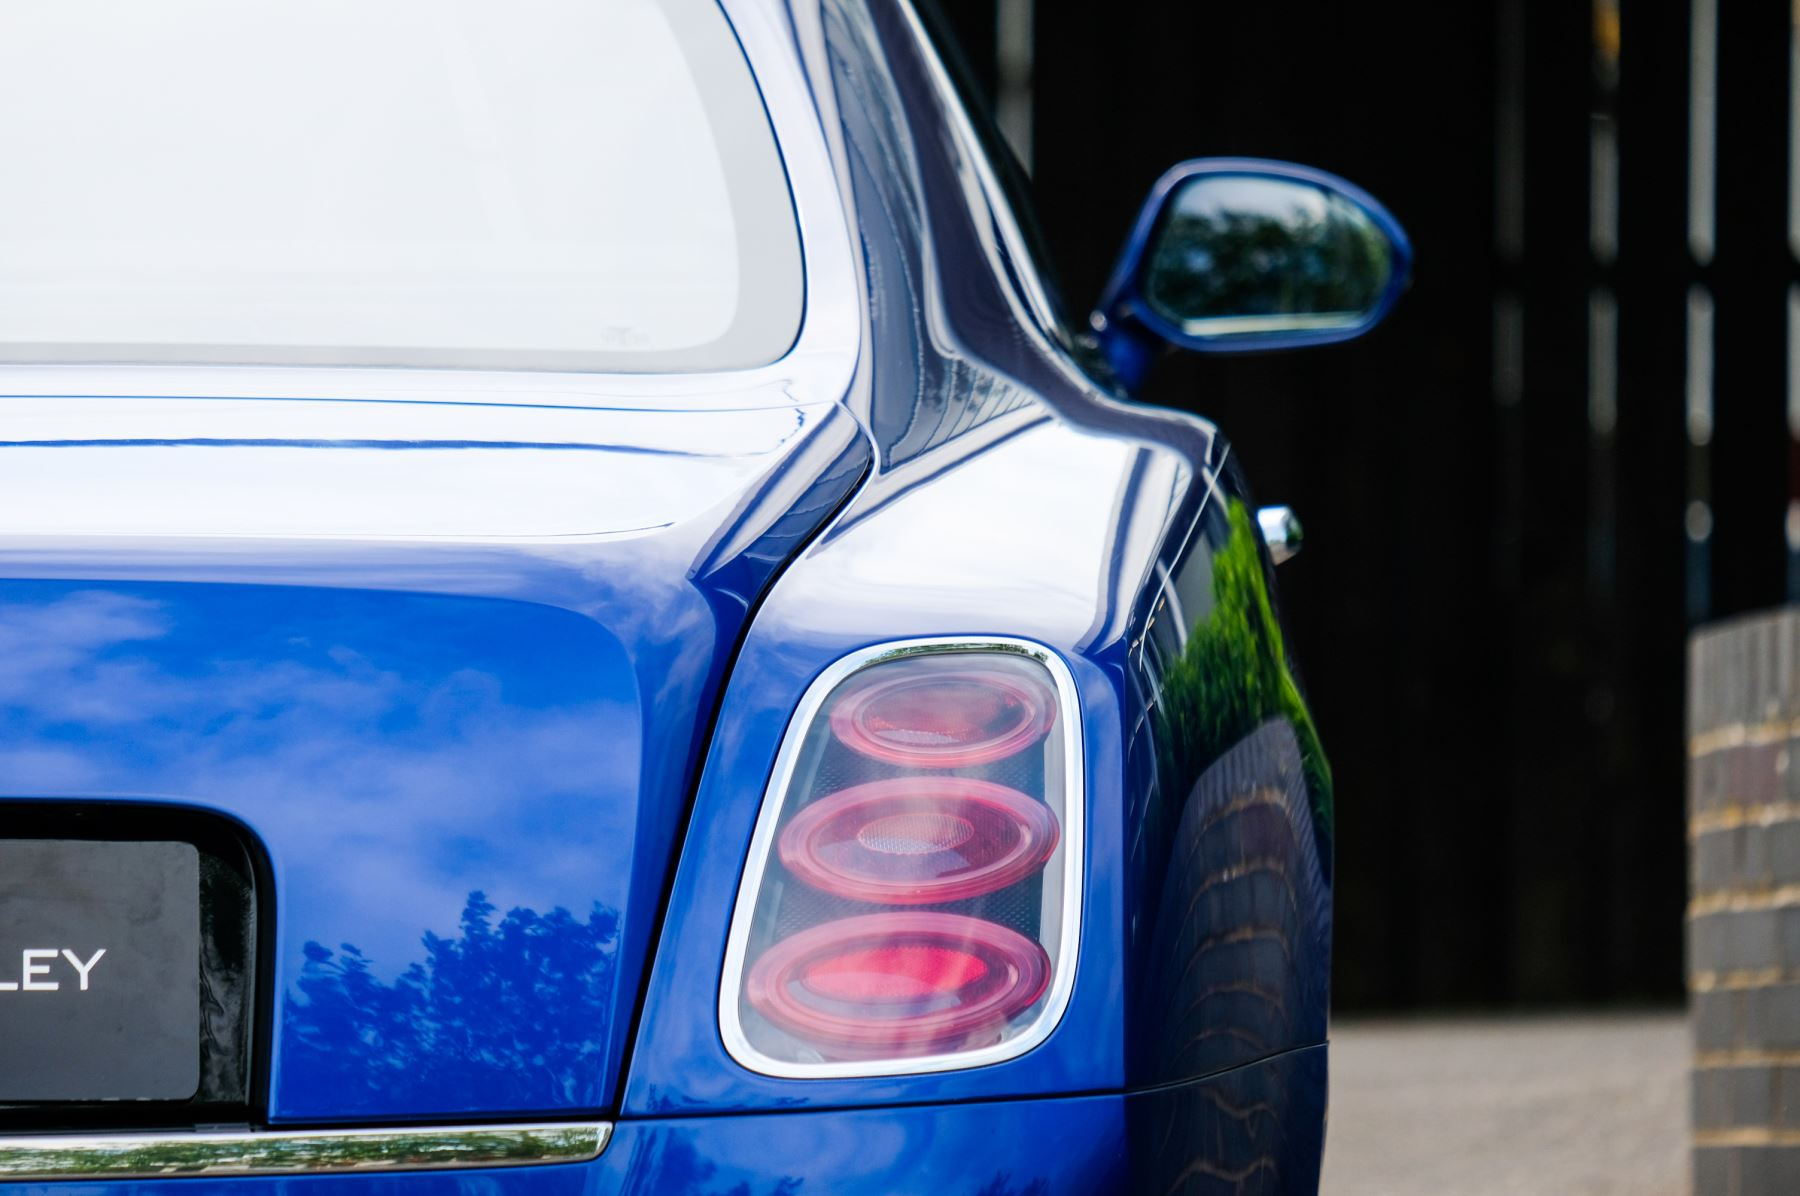 Bentley Mulsanne Speed 6.8 V8 Speed - Speed Premier and Entertainment Specification image 7